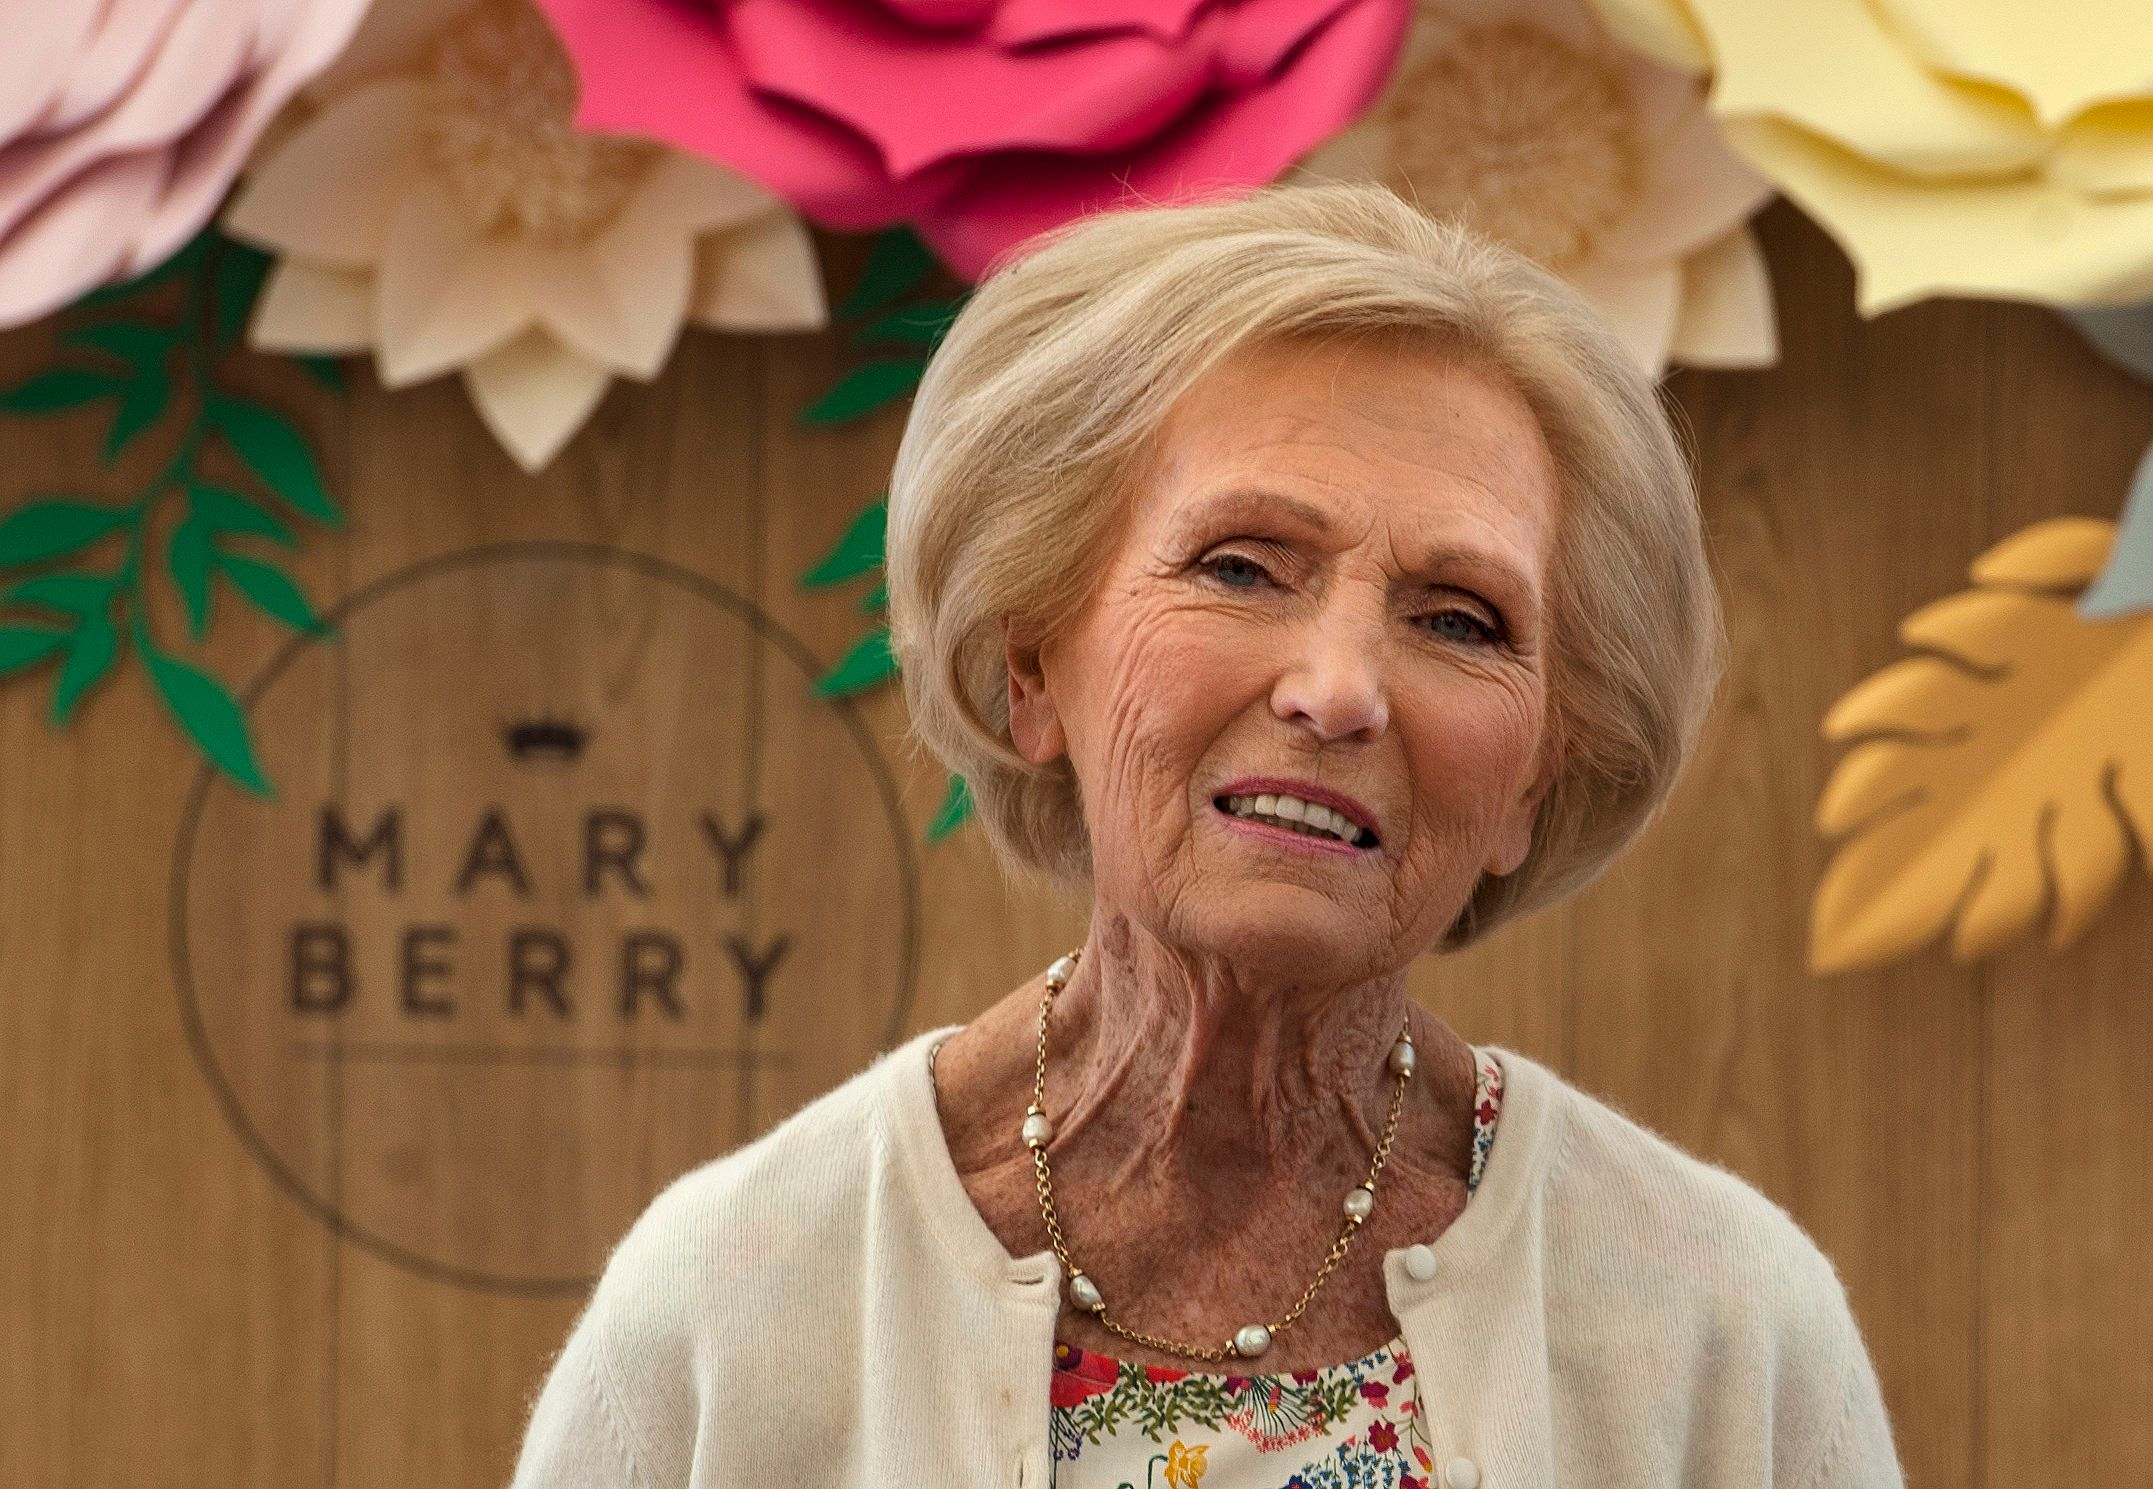 Mary Berry returns to judging soggy bottoms on BBC's Britain's Best Cook